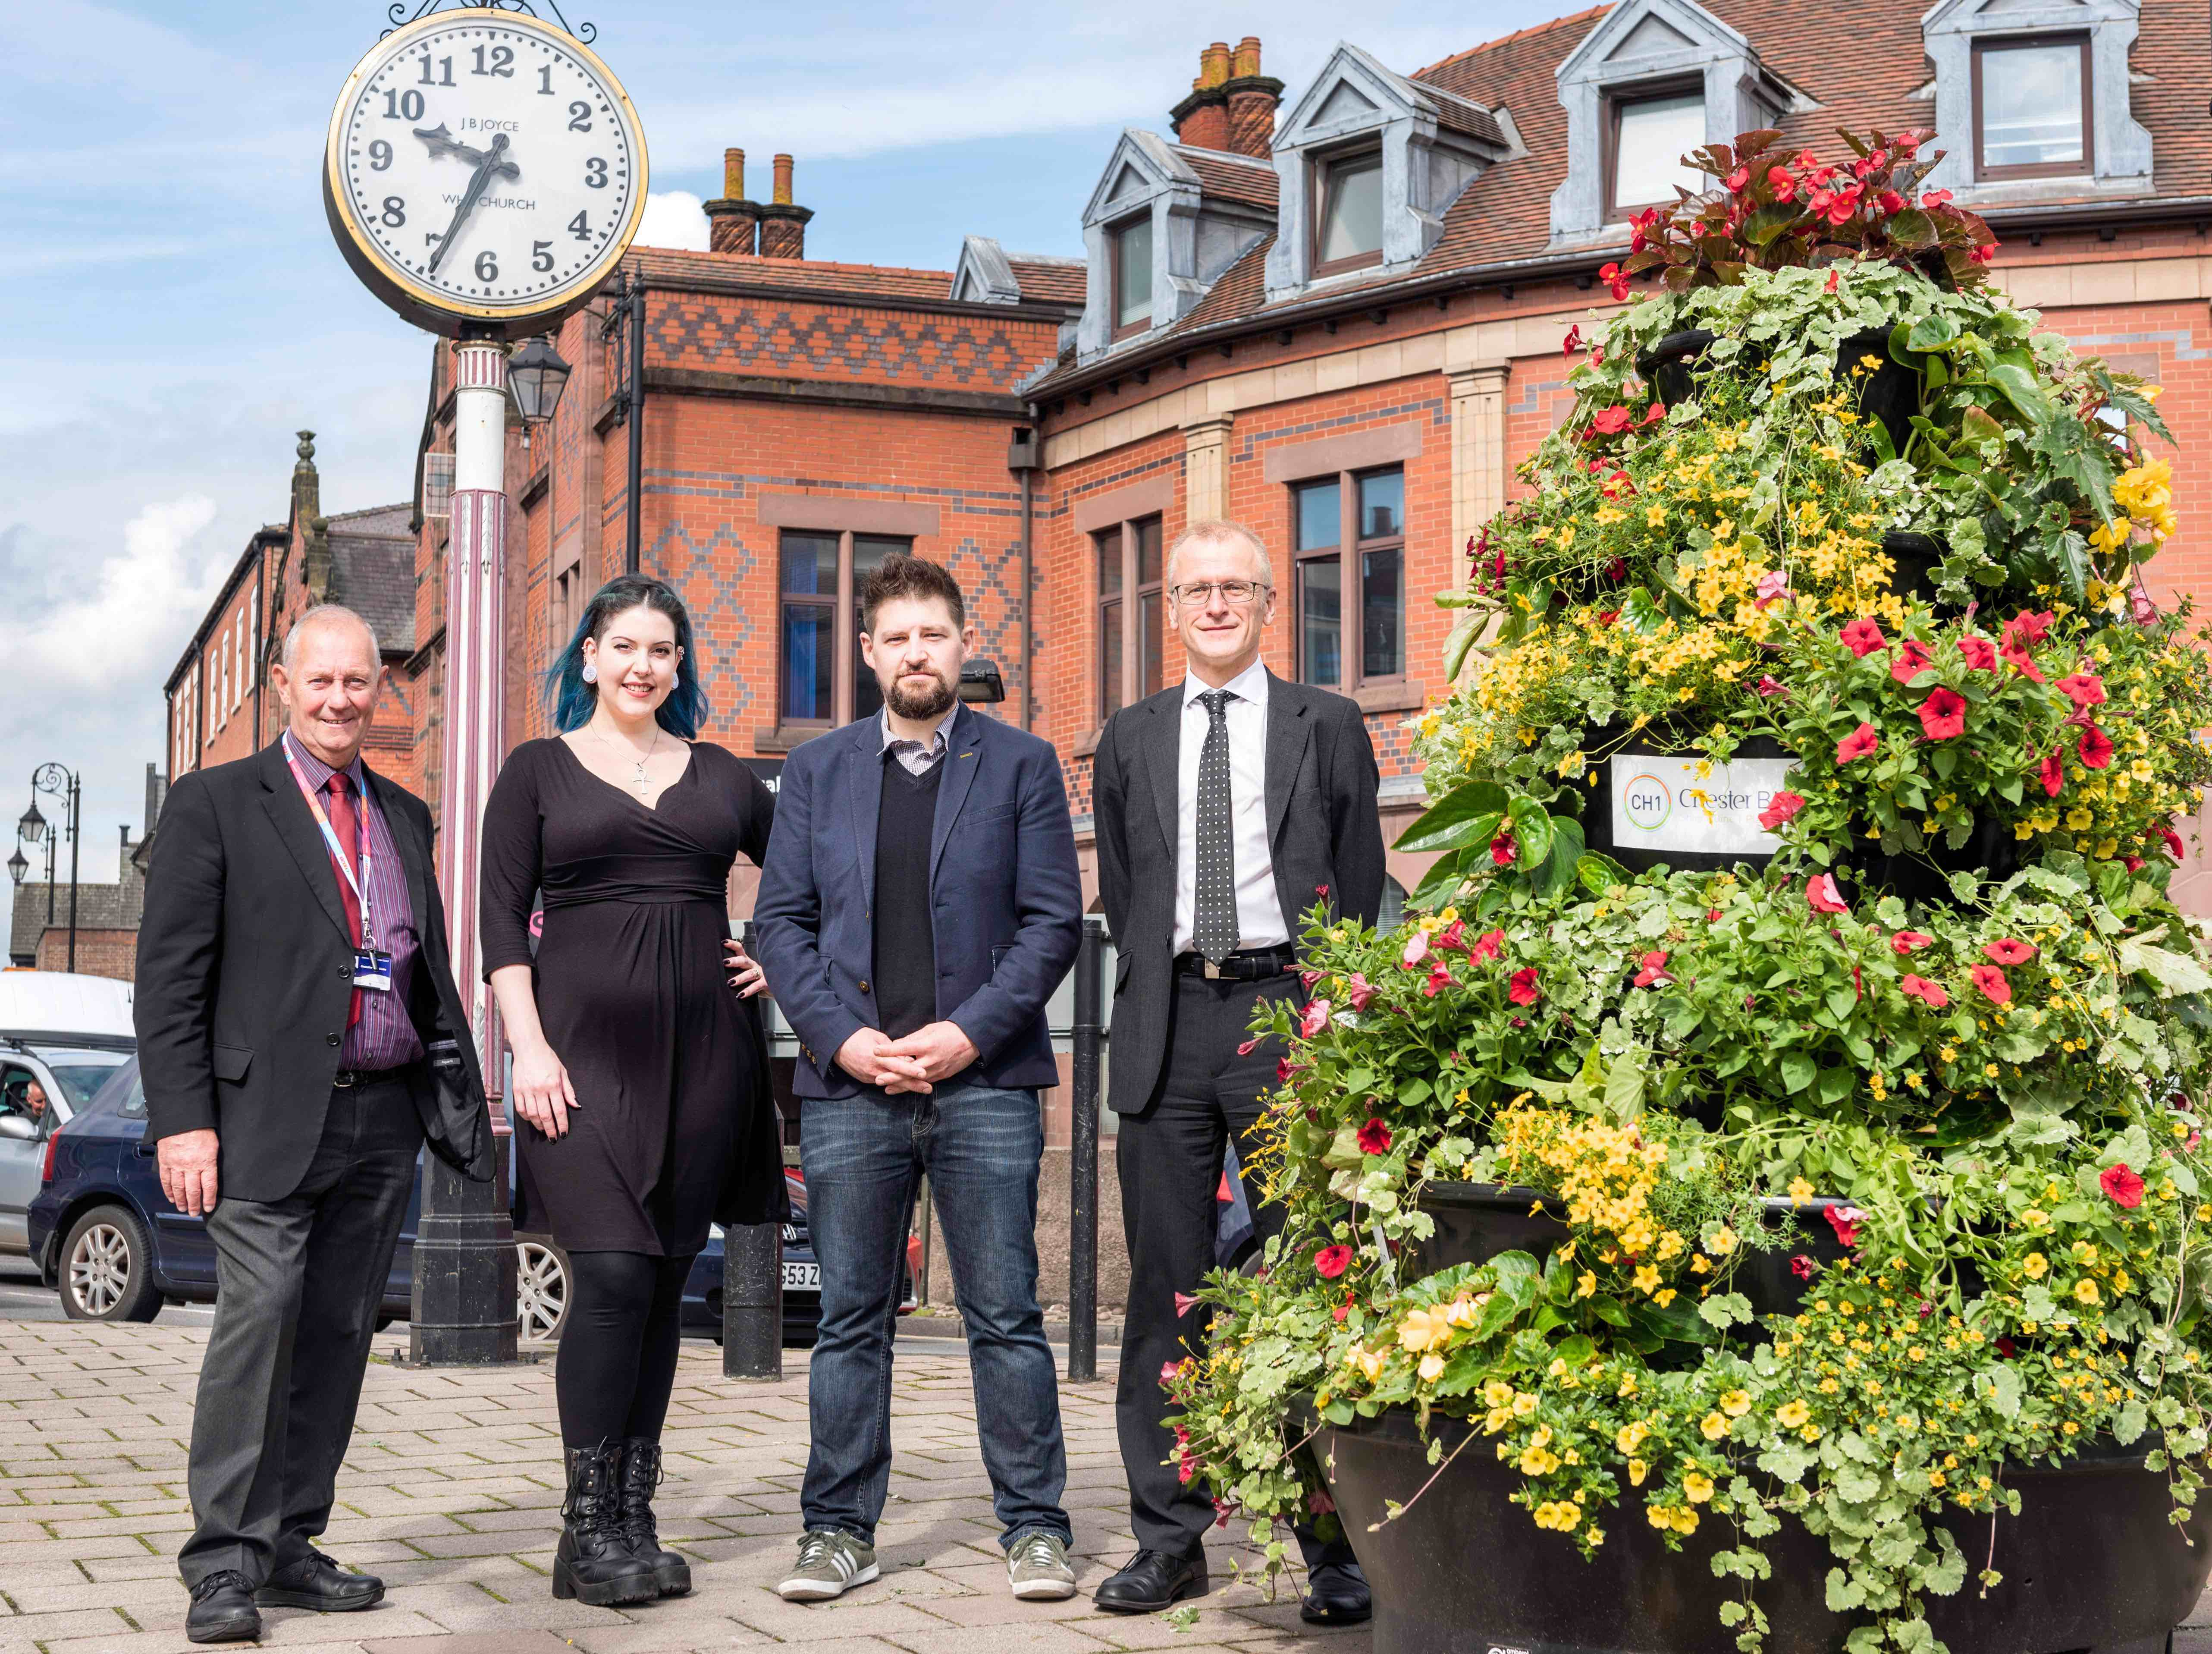 Pictured with the new planters (right to left): Nick White, City Centre Manager at CH1ChesterBID, Jake Potter, chef/owner of Atina Kitchen, Samantha Taylor, Manager of Lee Louise and Cllr Brian Clarke, Cabinet Member for Economic Development and Infrastructure at Cheshire West and Chester Council.